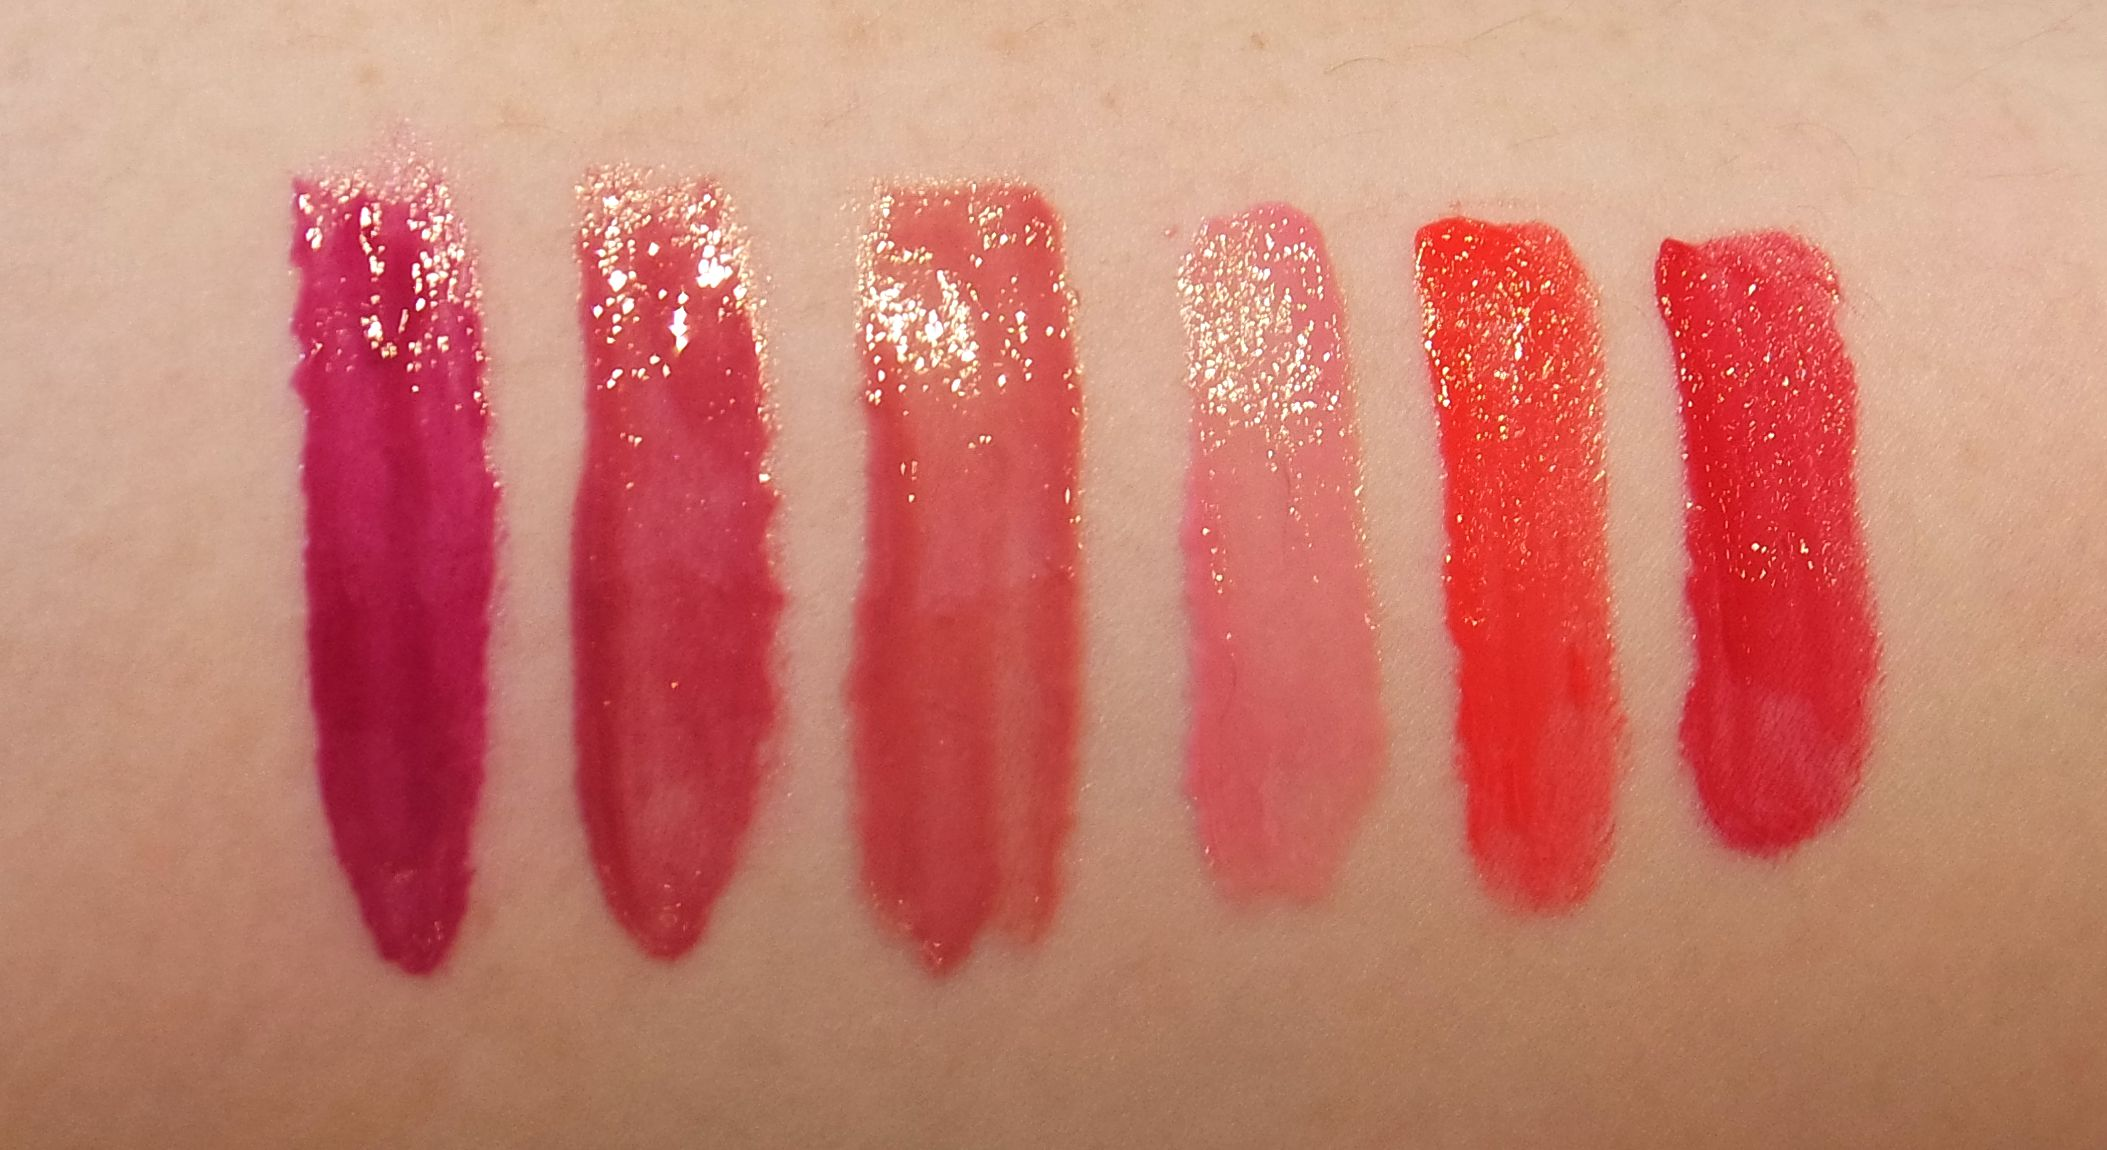 From left:Peace Pop, Love Pop, Cocoa Pop, Wink Pop, Happy Pop, and Lava Pop